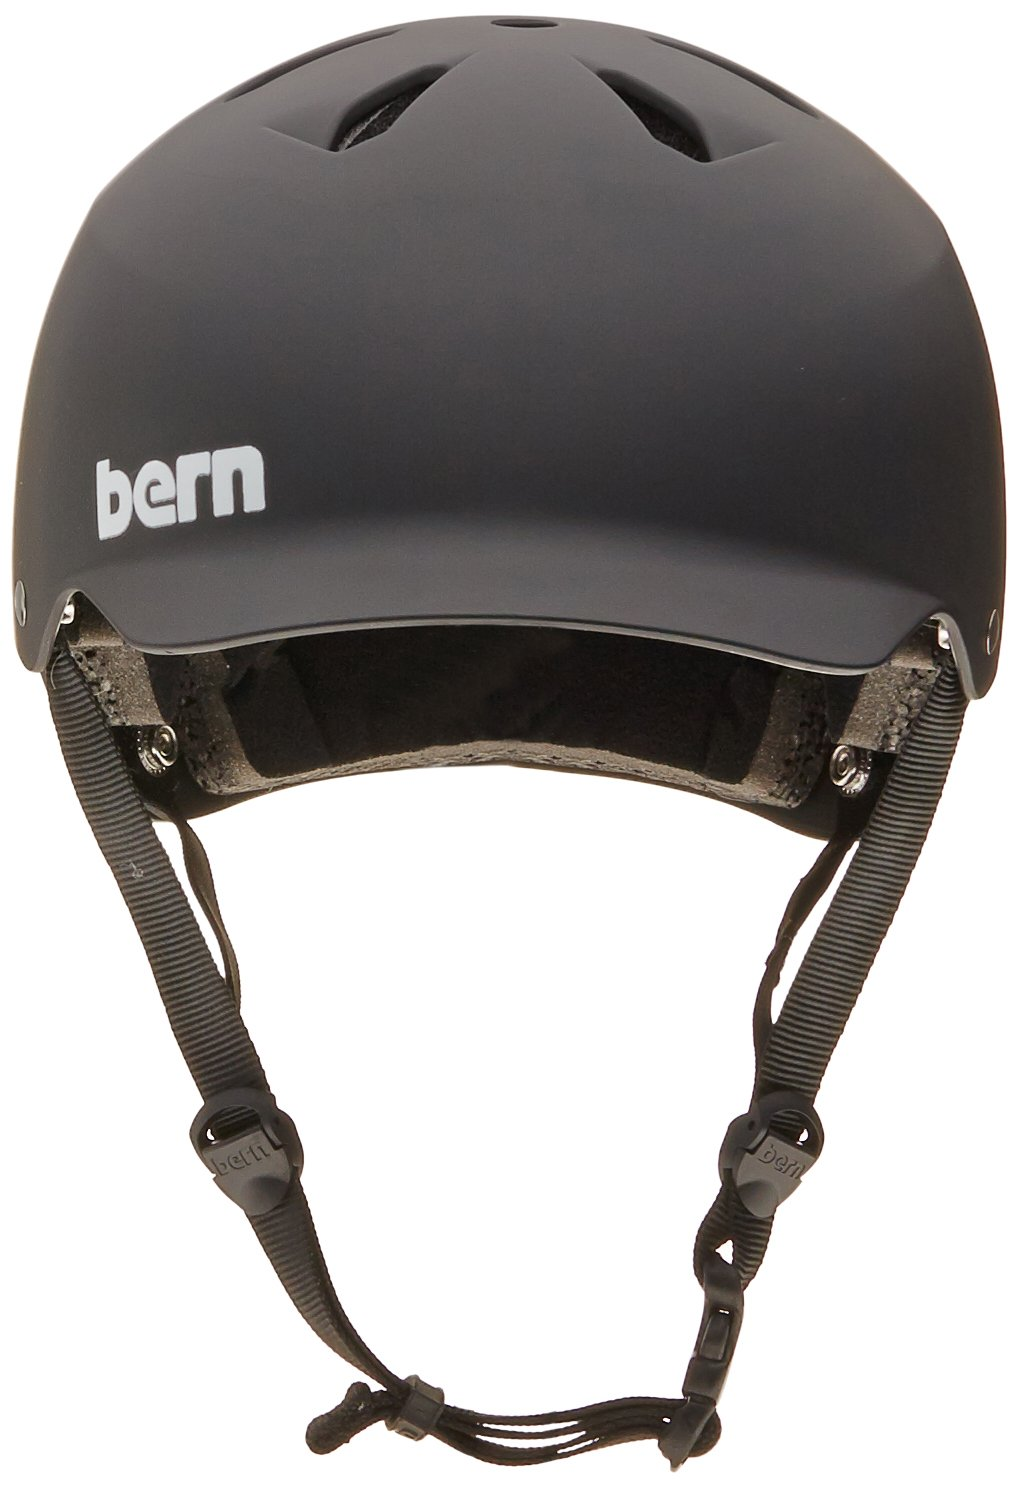 Amazon.com : Bern Watts Summer Hard Hat : Bike Helmets : Sports & Outdoors